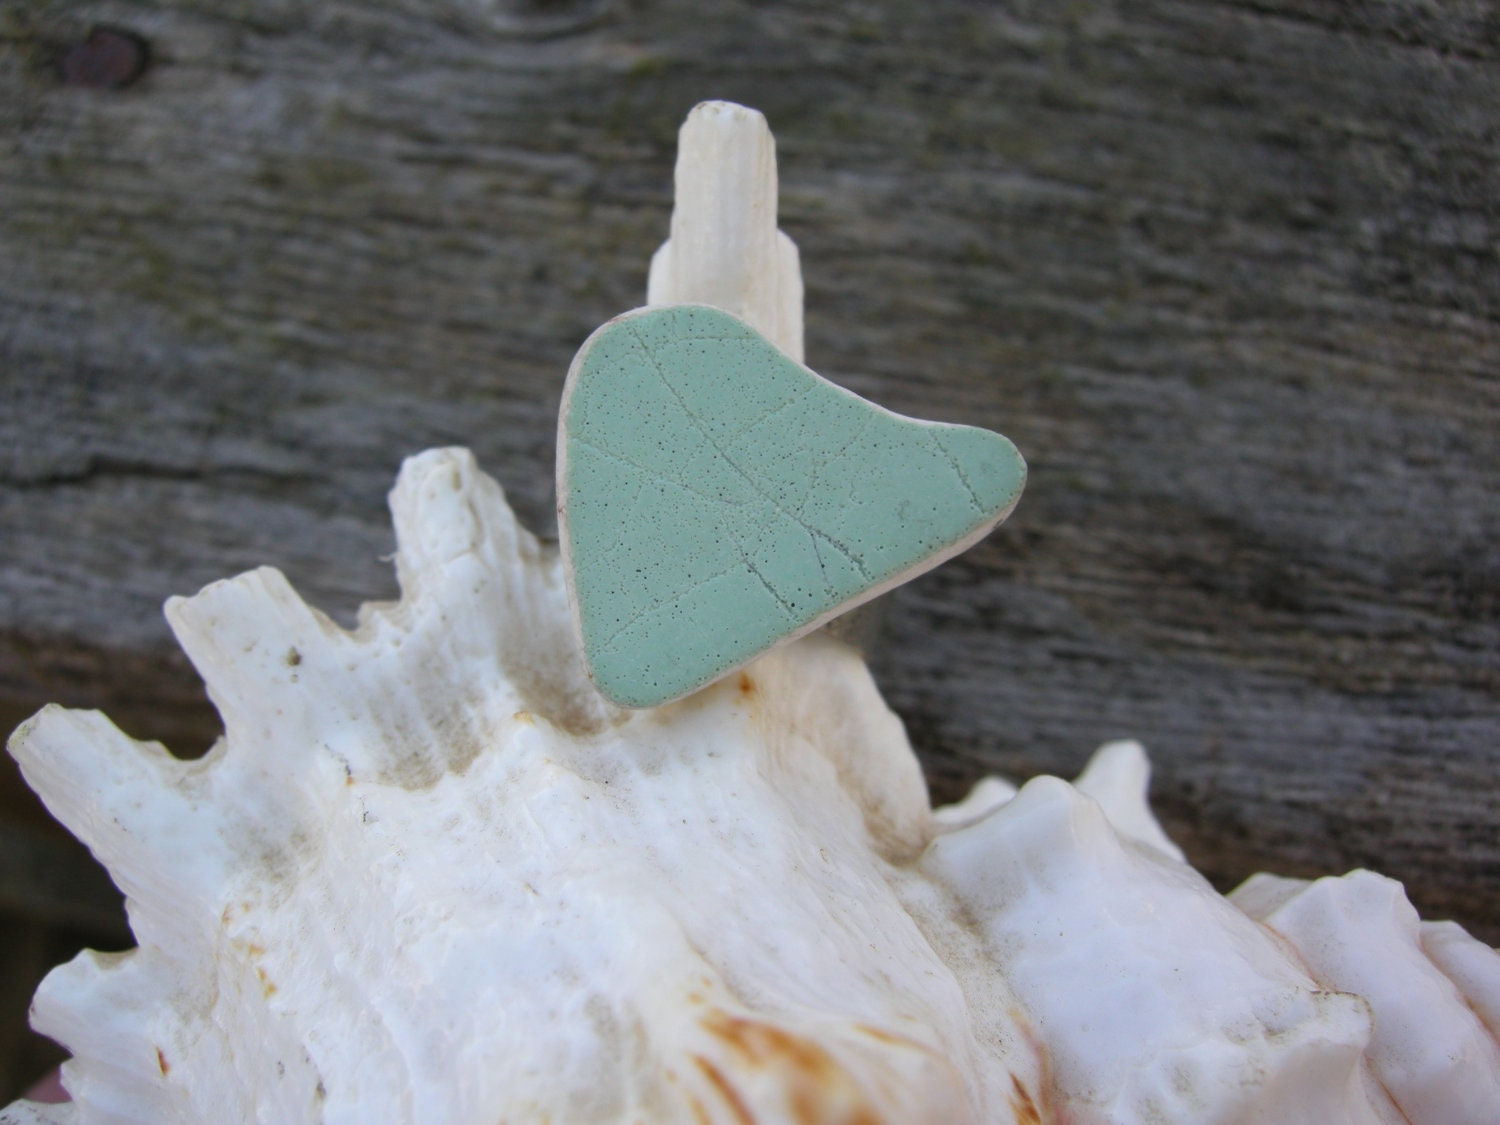 Upcycled beach pottery adjustable ring - AdriennesCreations4u